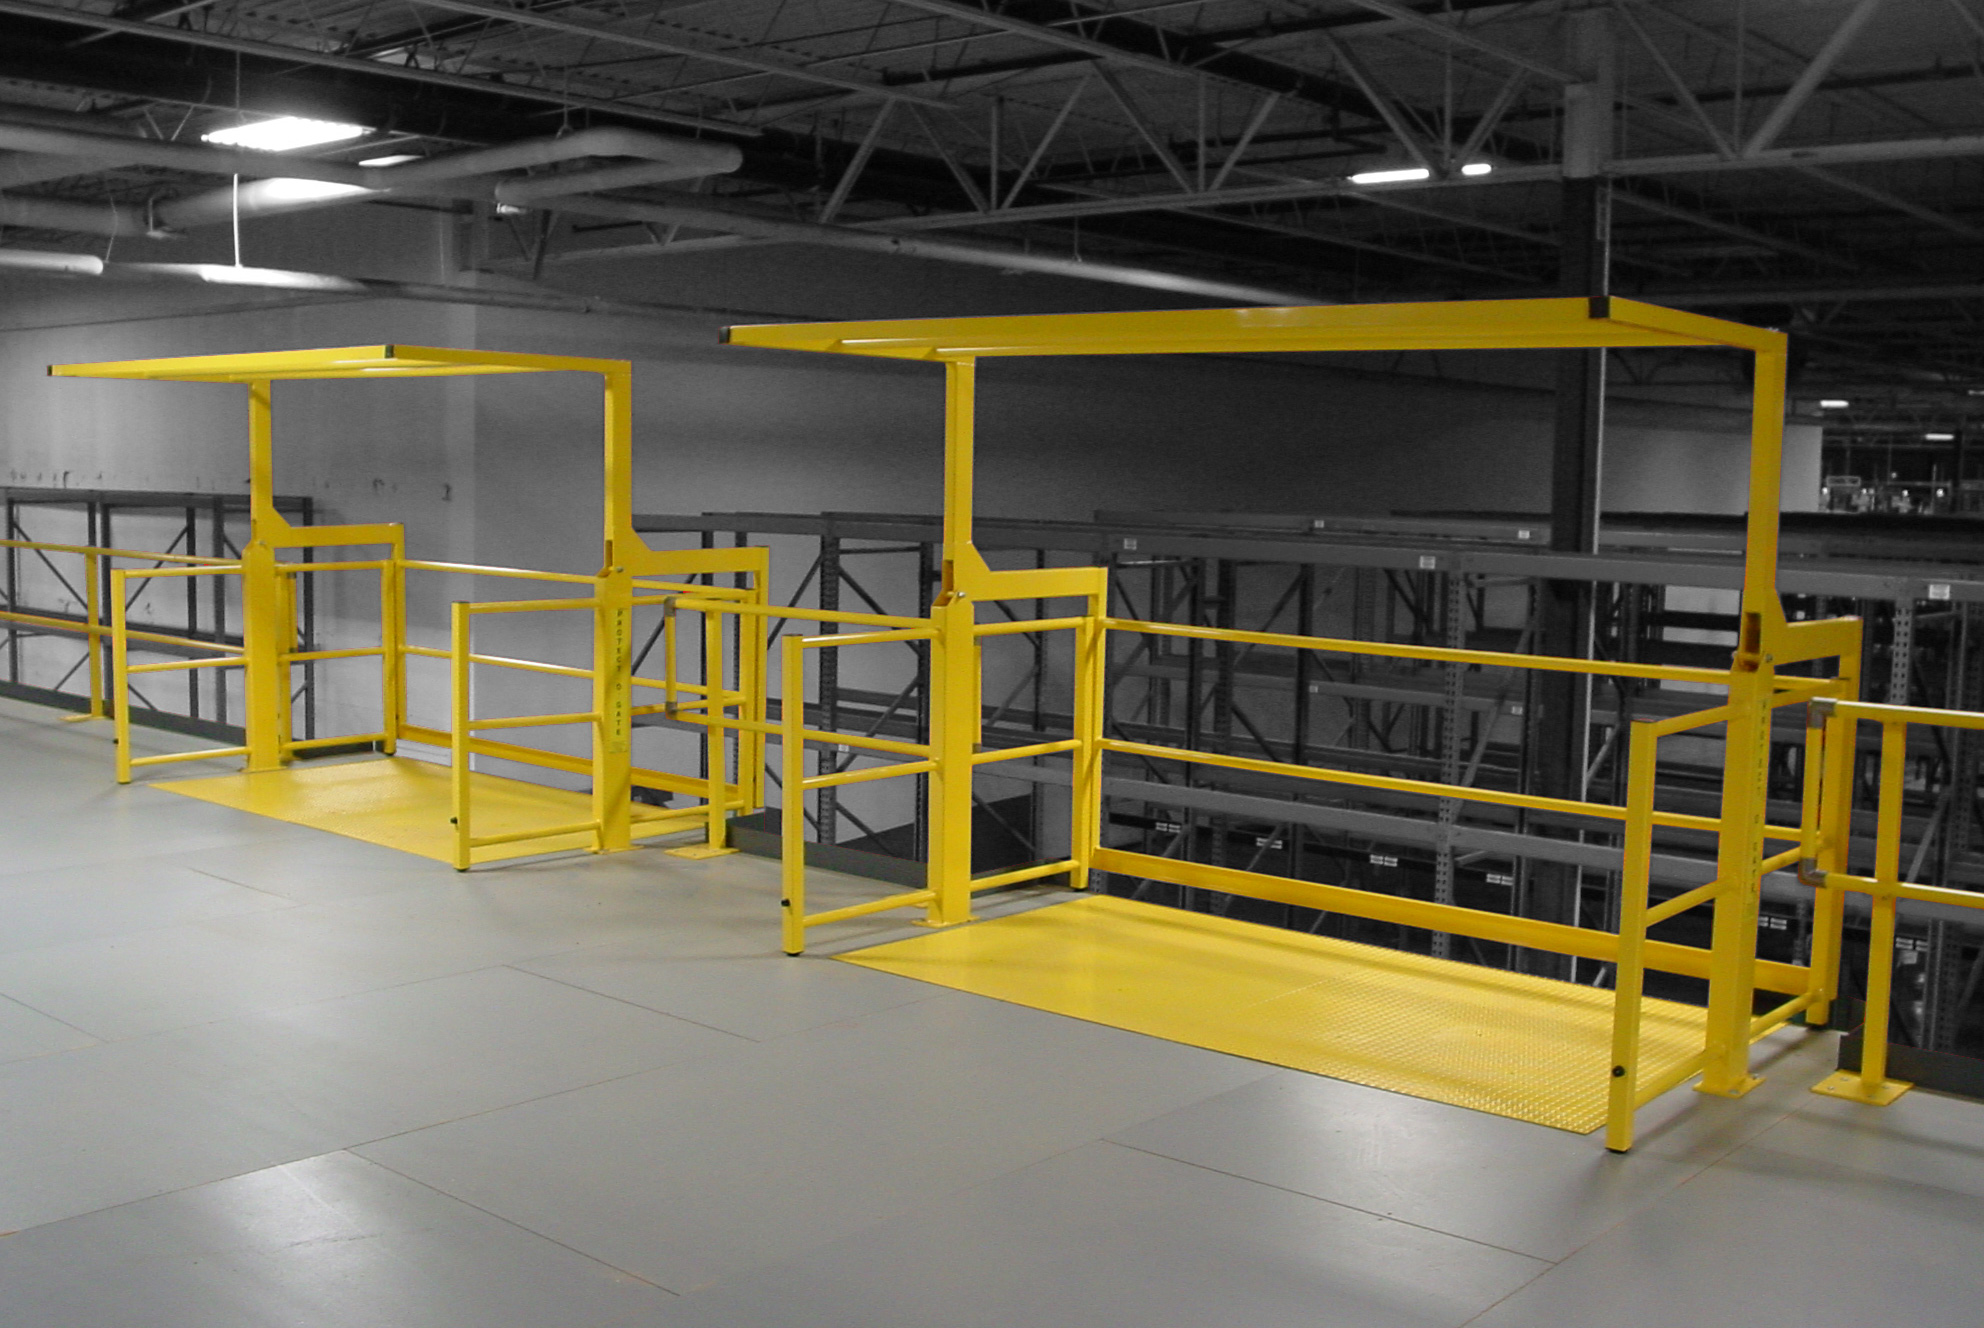 Pivot Model Mezzanine Safety Gate From Benko Products Now